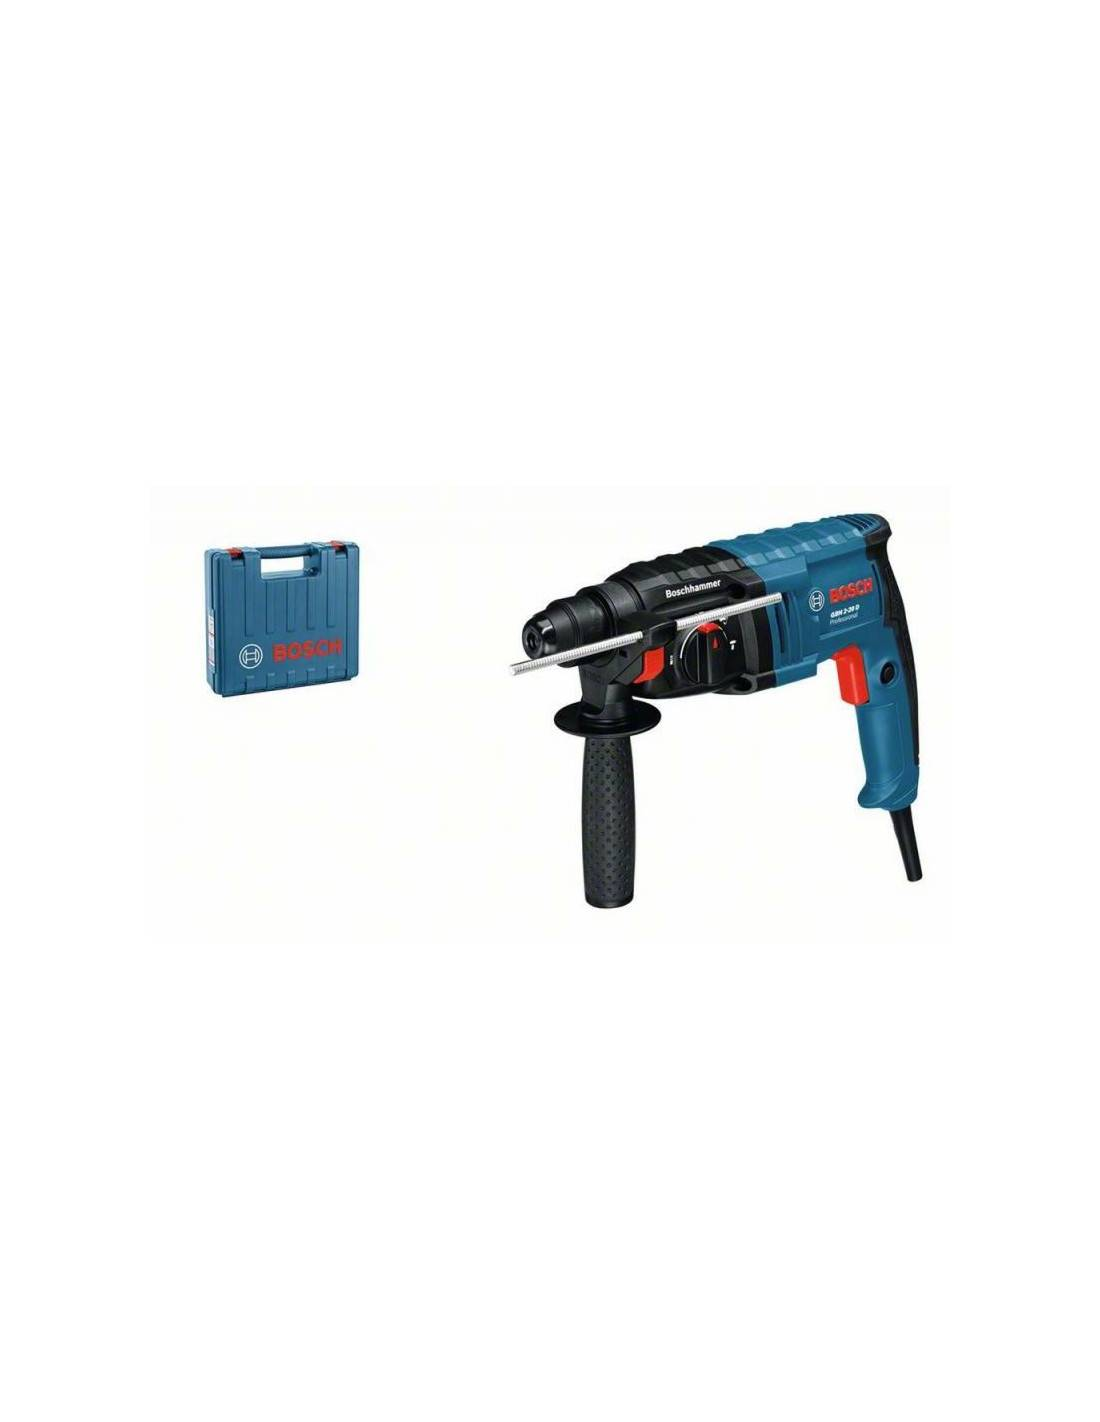 BOSCH - Perforateur burineur 650W SDS+ GBH 2-20 D en coffret standard - 061125A400